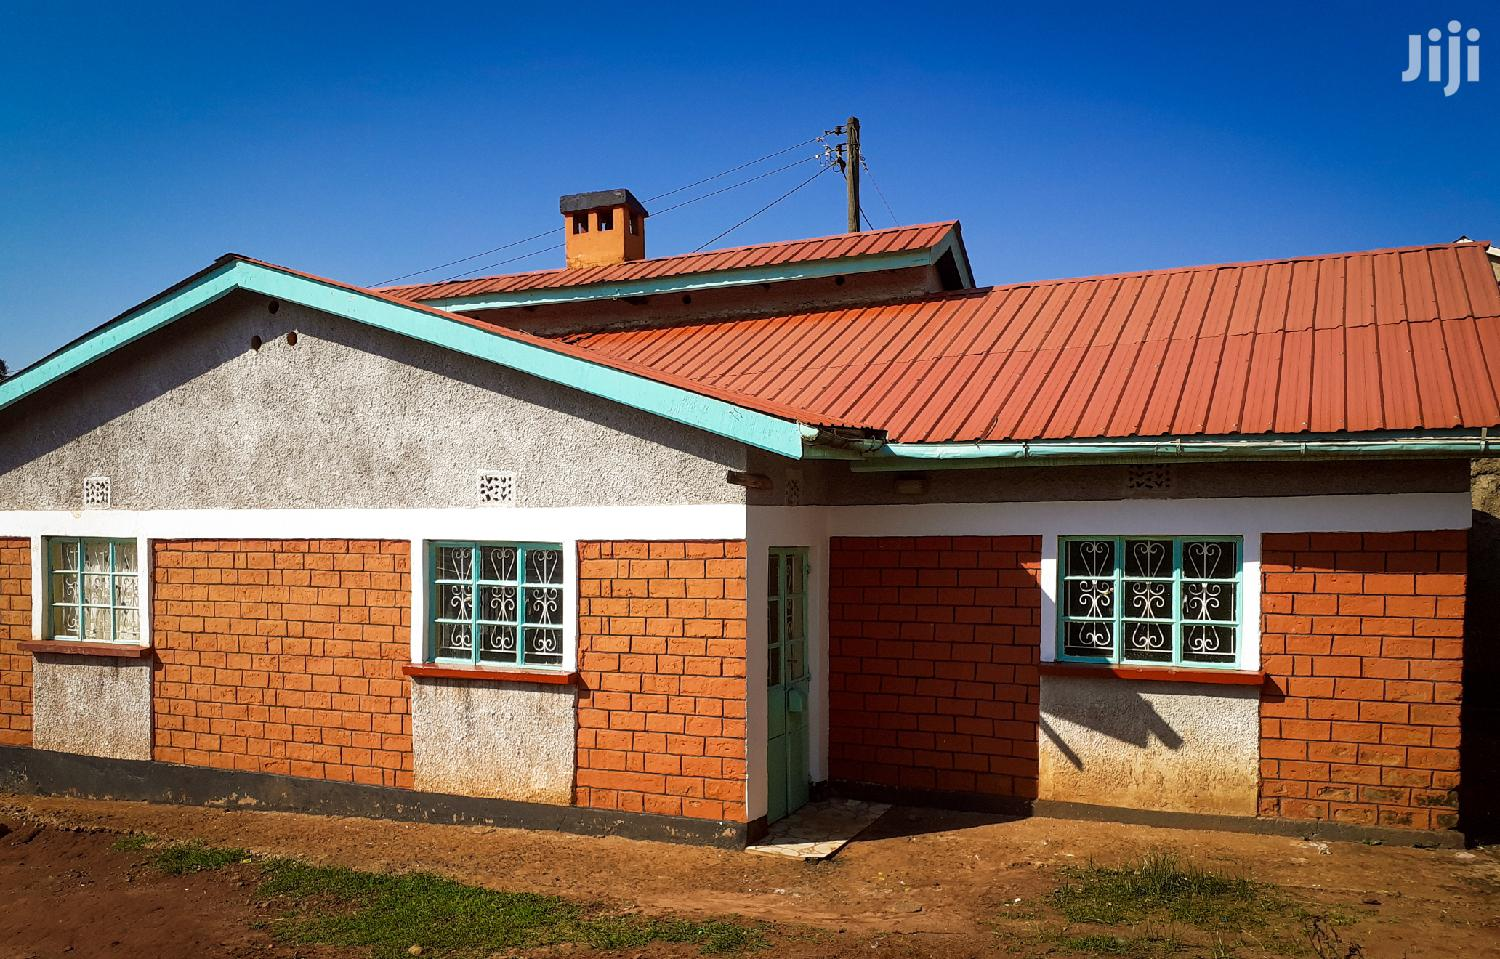 2-bedroom House To Let In Lessos, Kitale